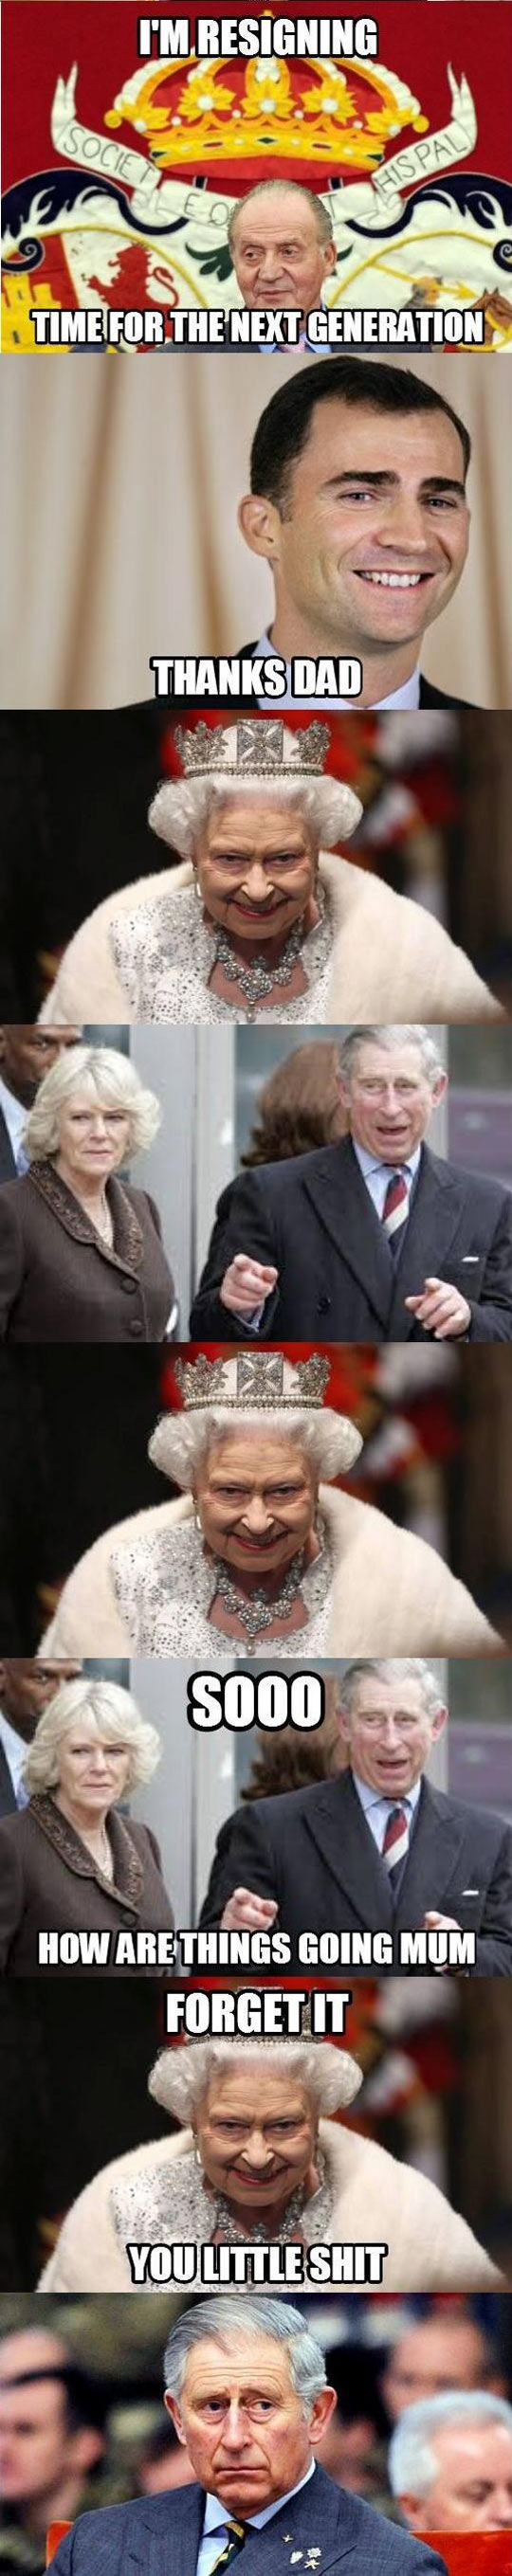 funny-King-resignation-Queen-Prince-Charles-Elizabeth